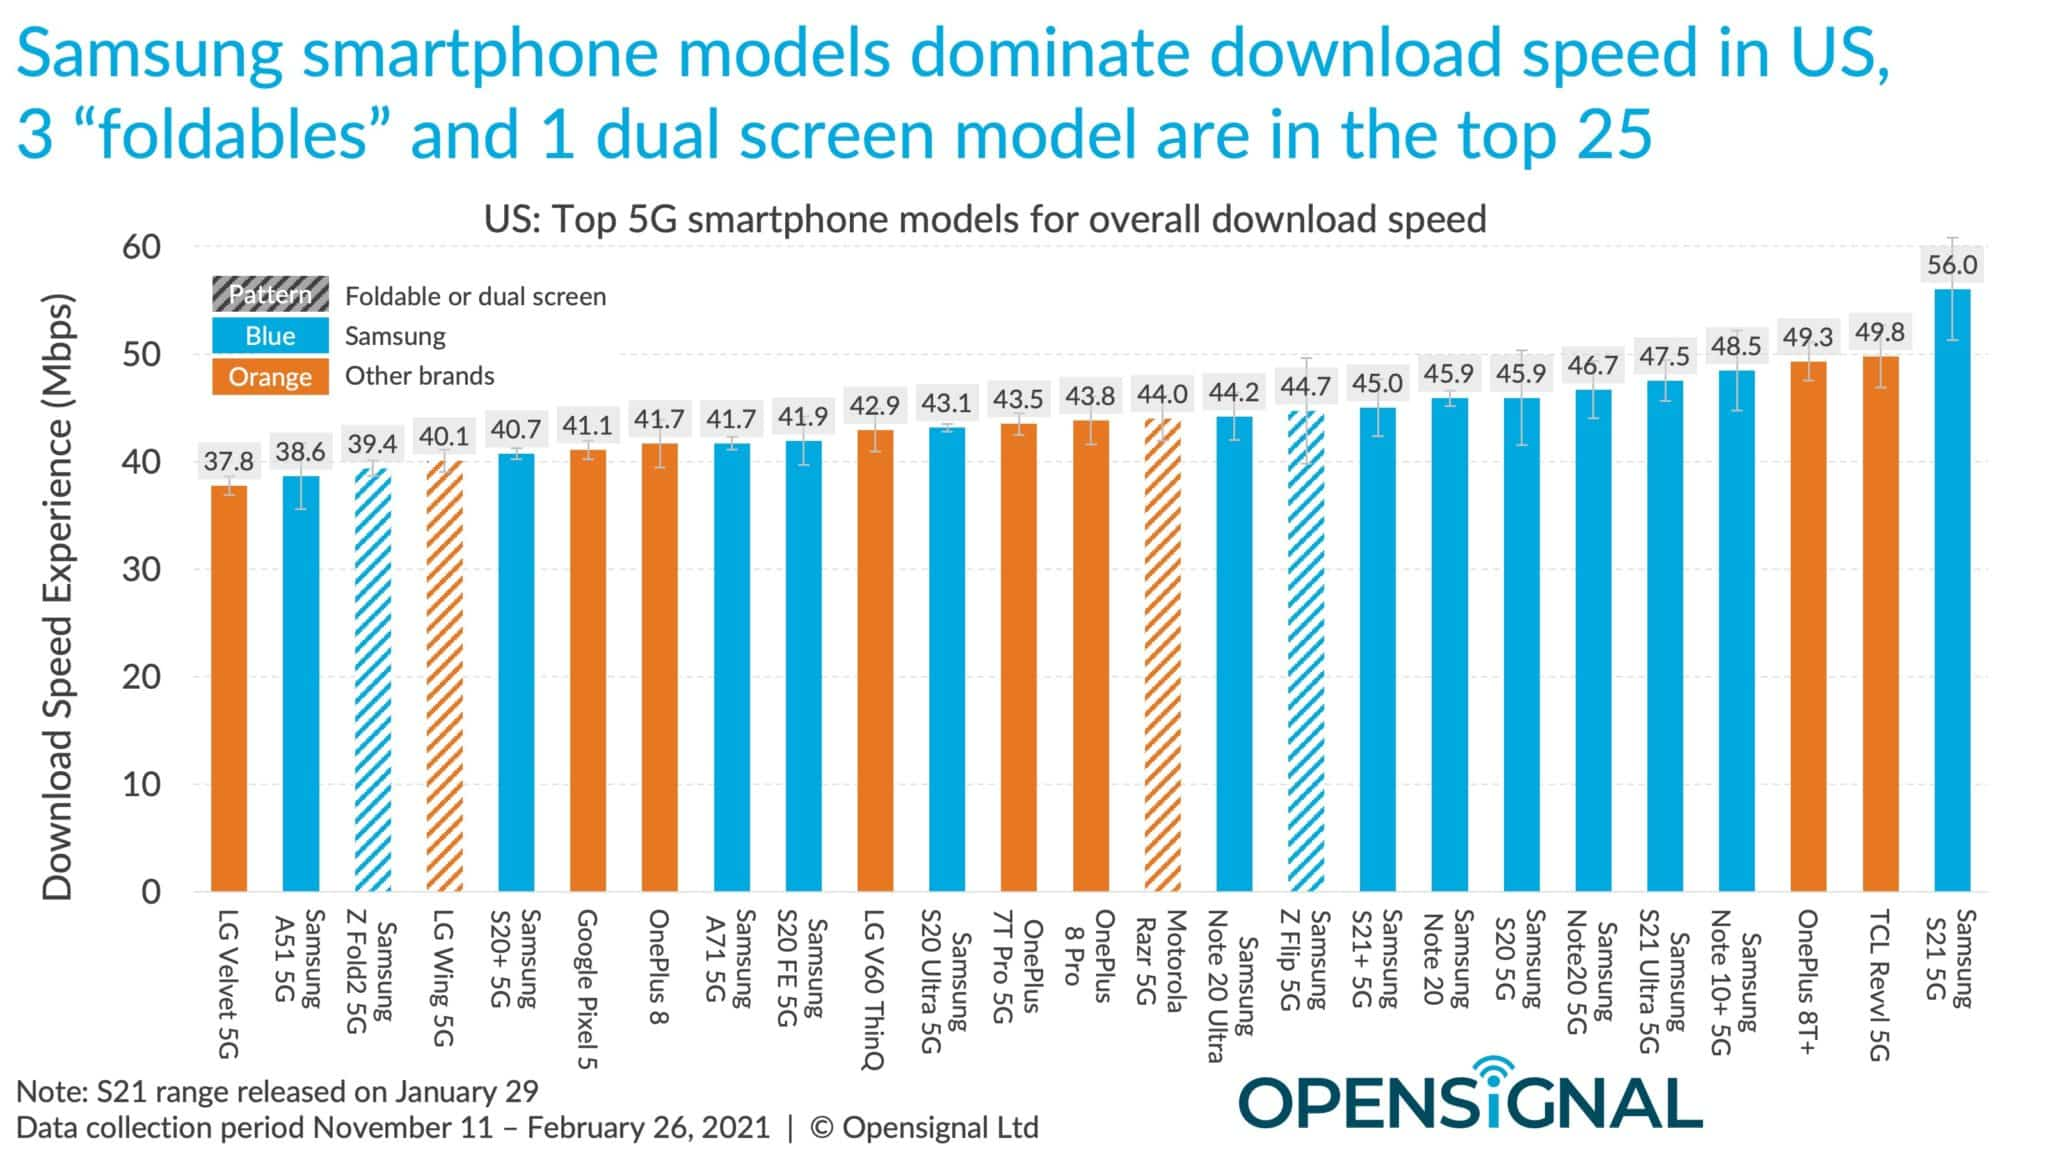 graph of 5g download speeds showing devices from samsung, tcl, oneplus, google, lg and motorola